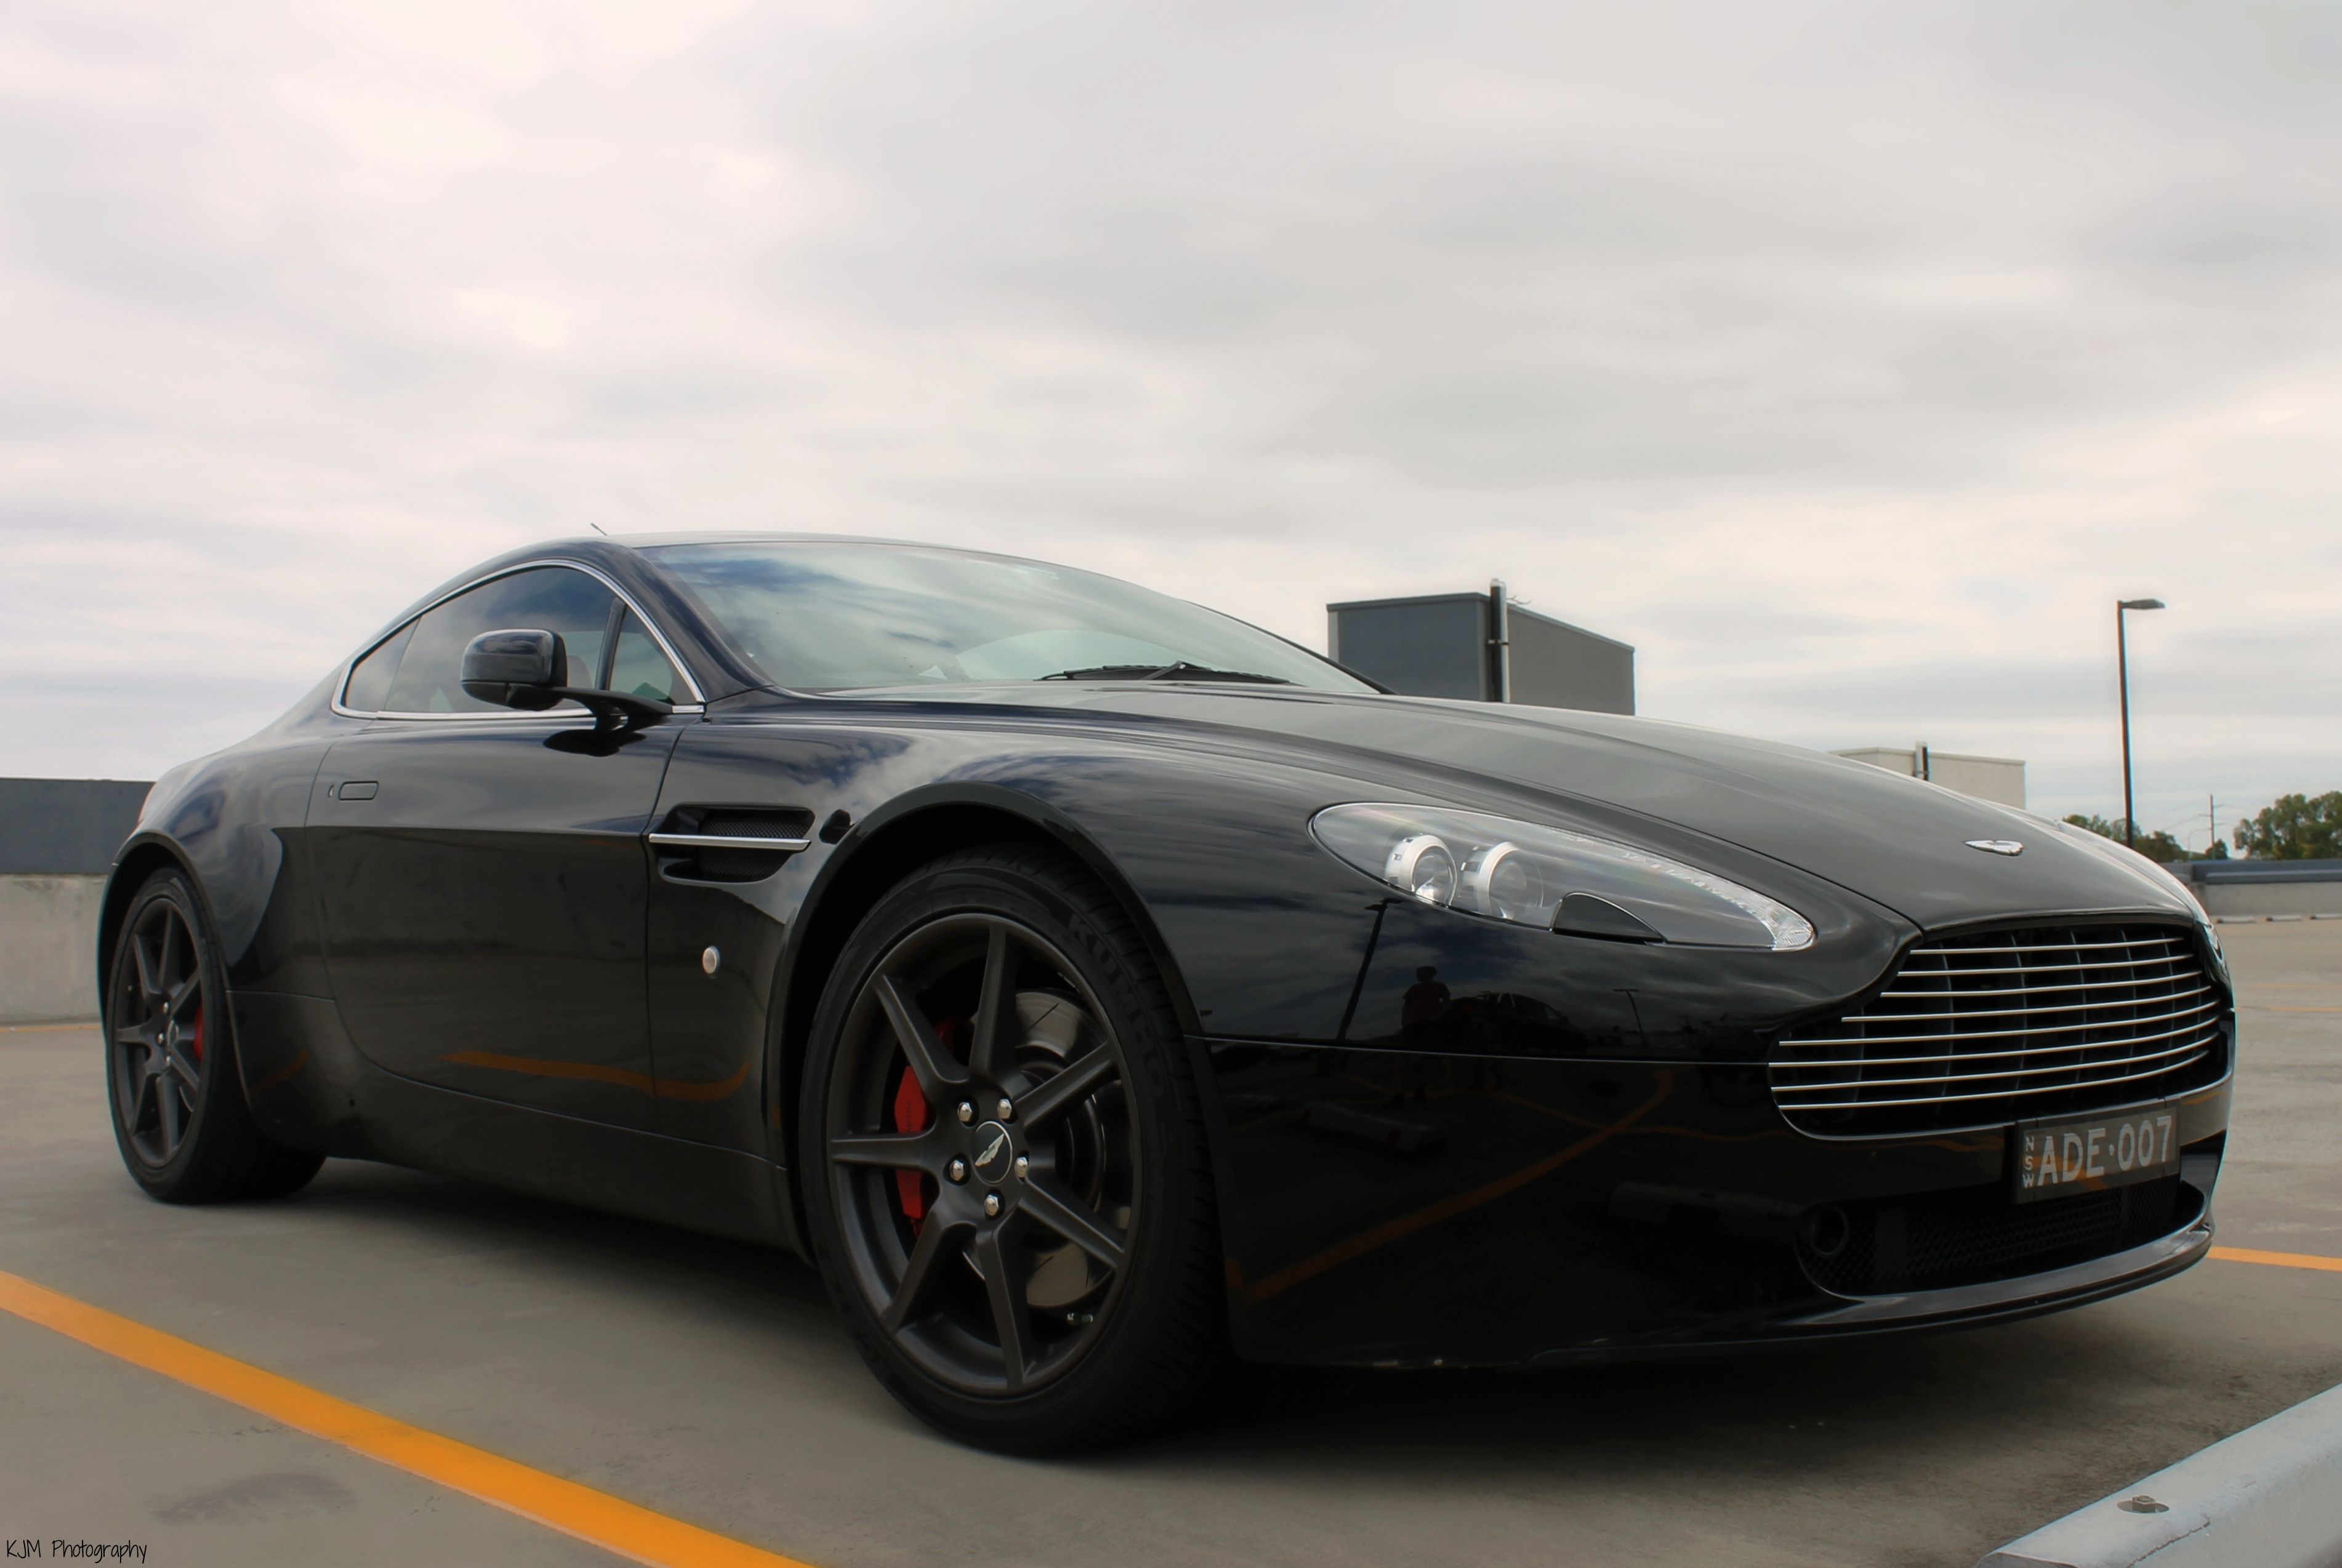 2007 aston martin v8 vantage kjm photography. Cars Review. Best American Auto & Cars Review